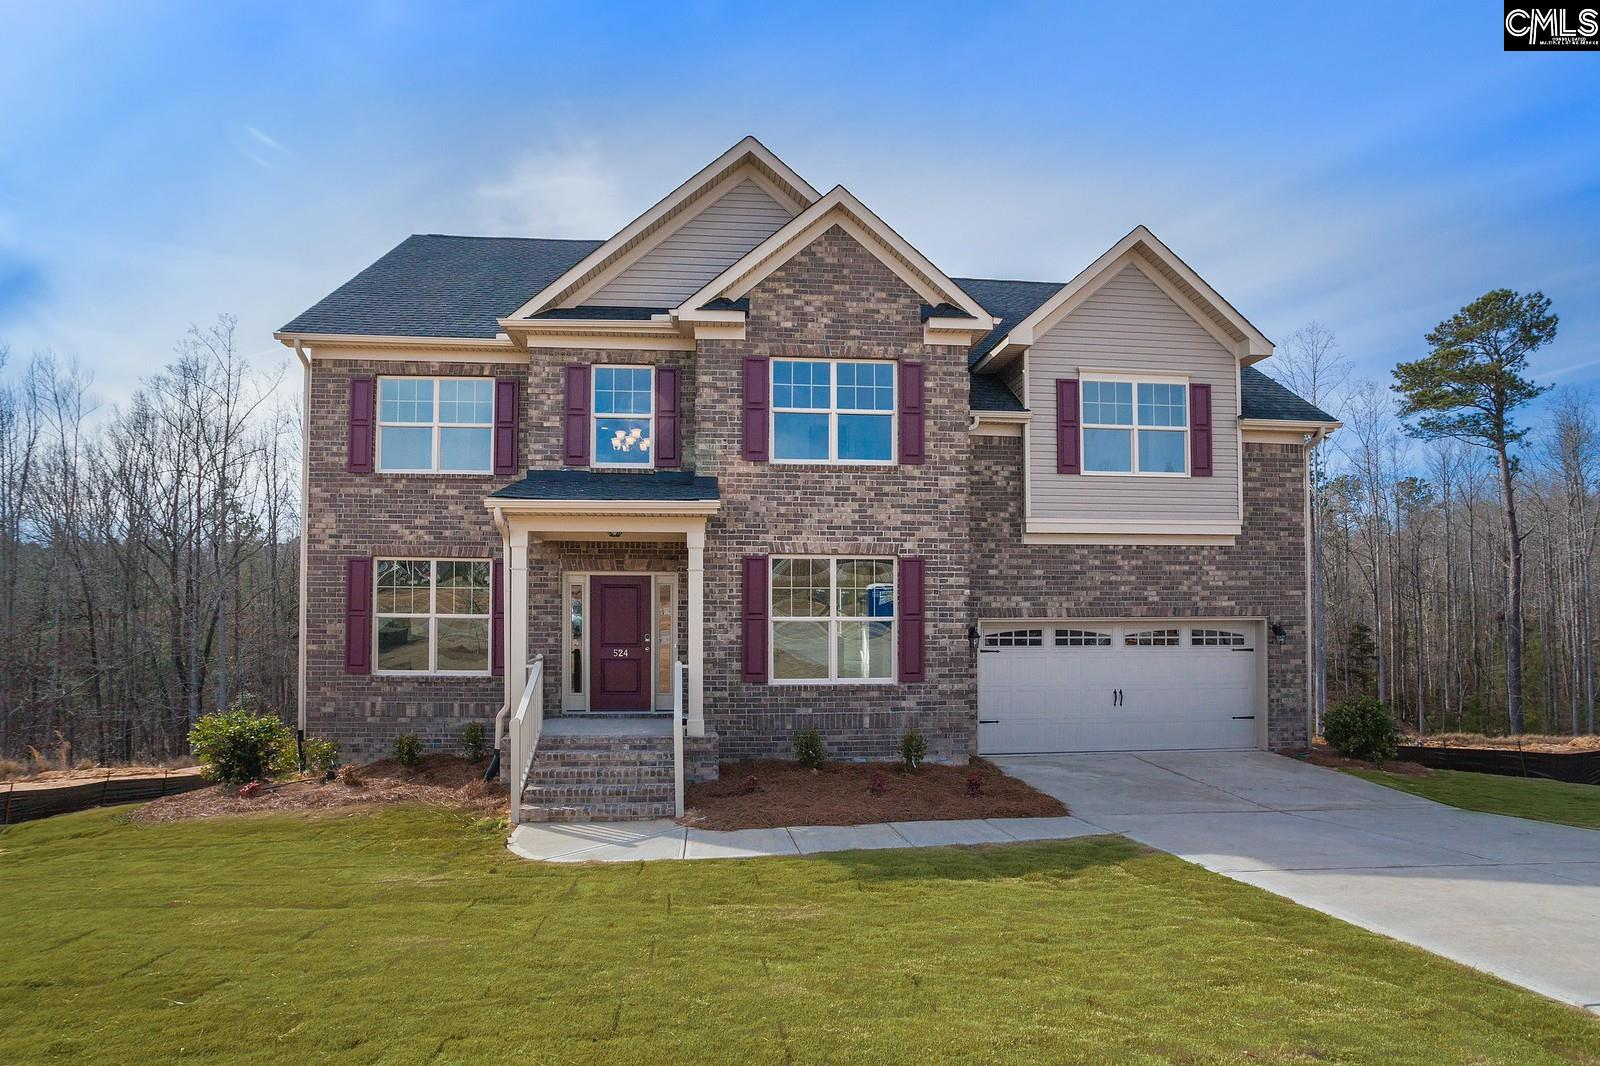 524 Maple Valley Blythewood, SC 29016